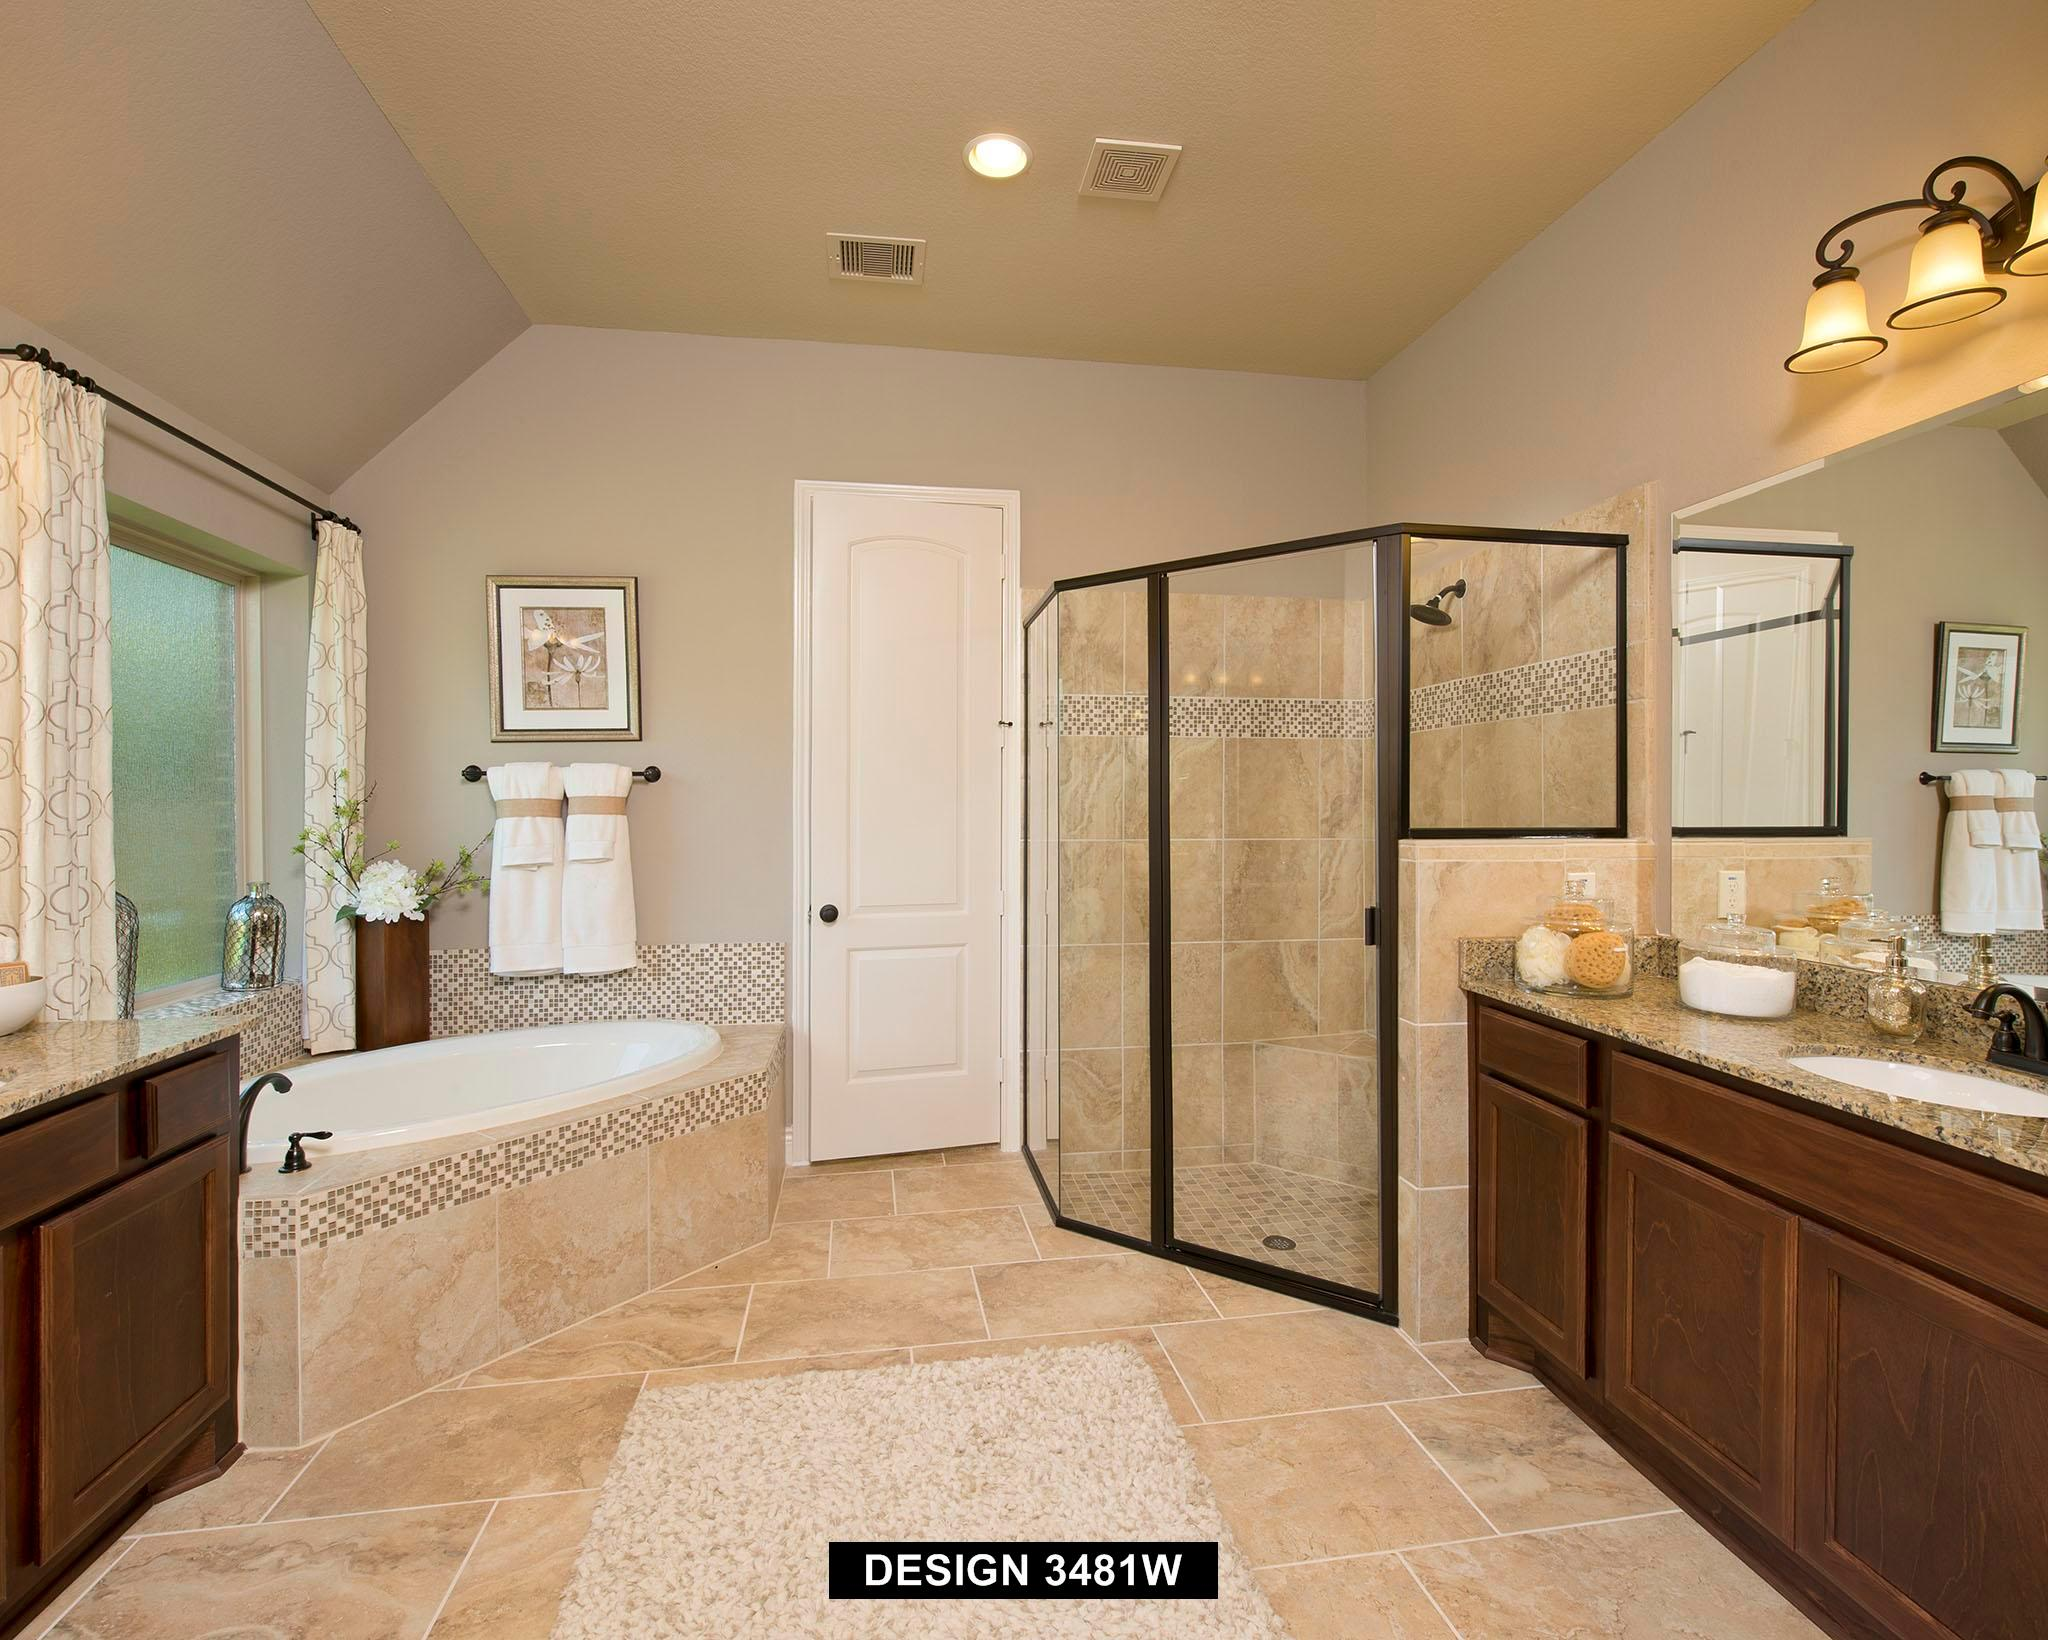 Bathroom featured in the 3481W By Perry Homes in Houston, TX